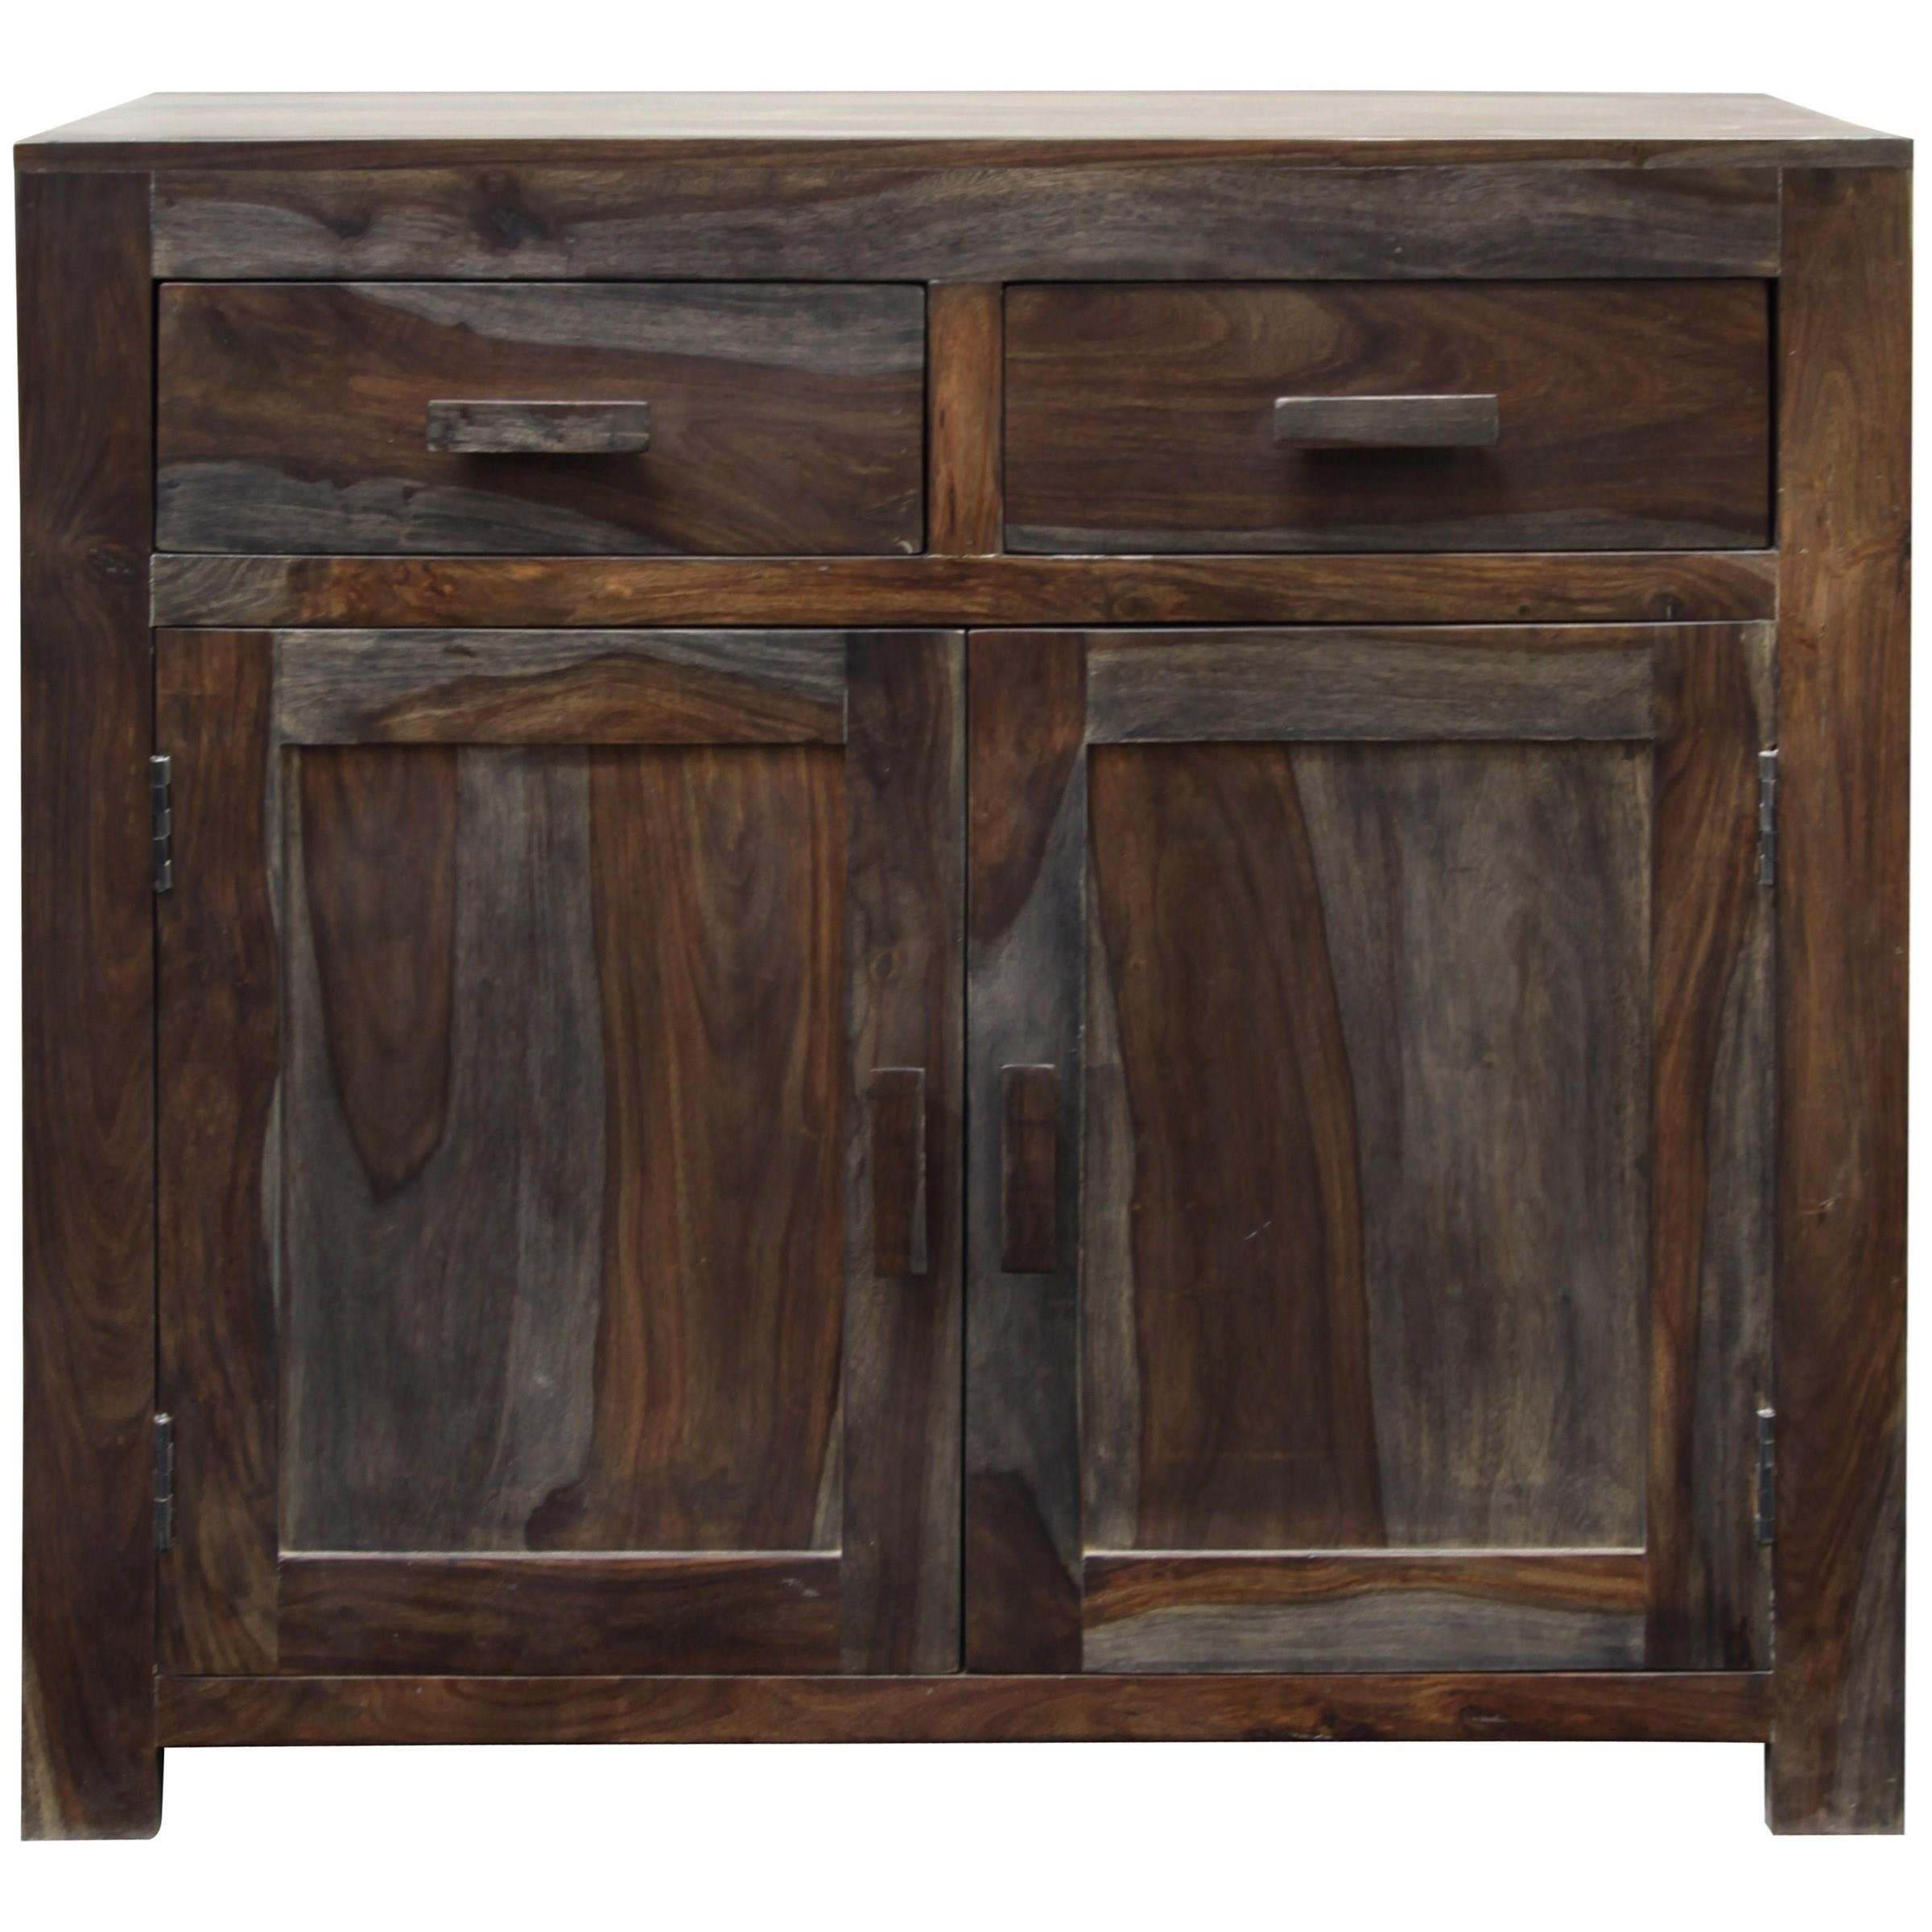 Occasional Cabinets 2 Door, 2 Drawer Sideboard by StyleCraft at Wilcox Furniture